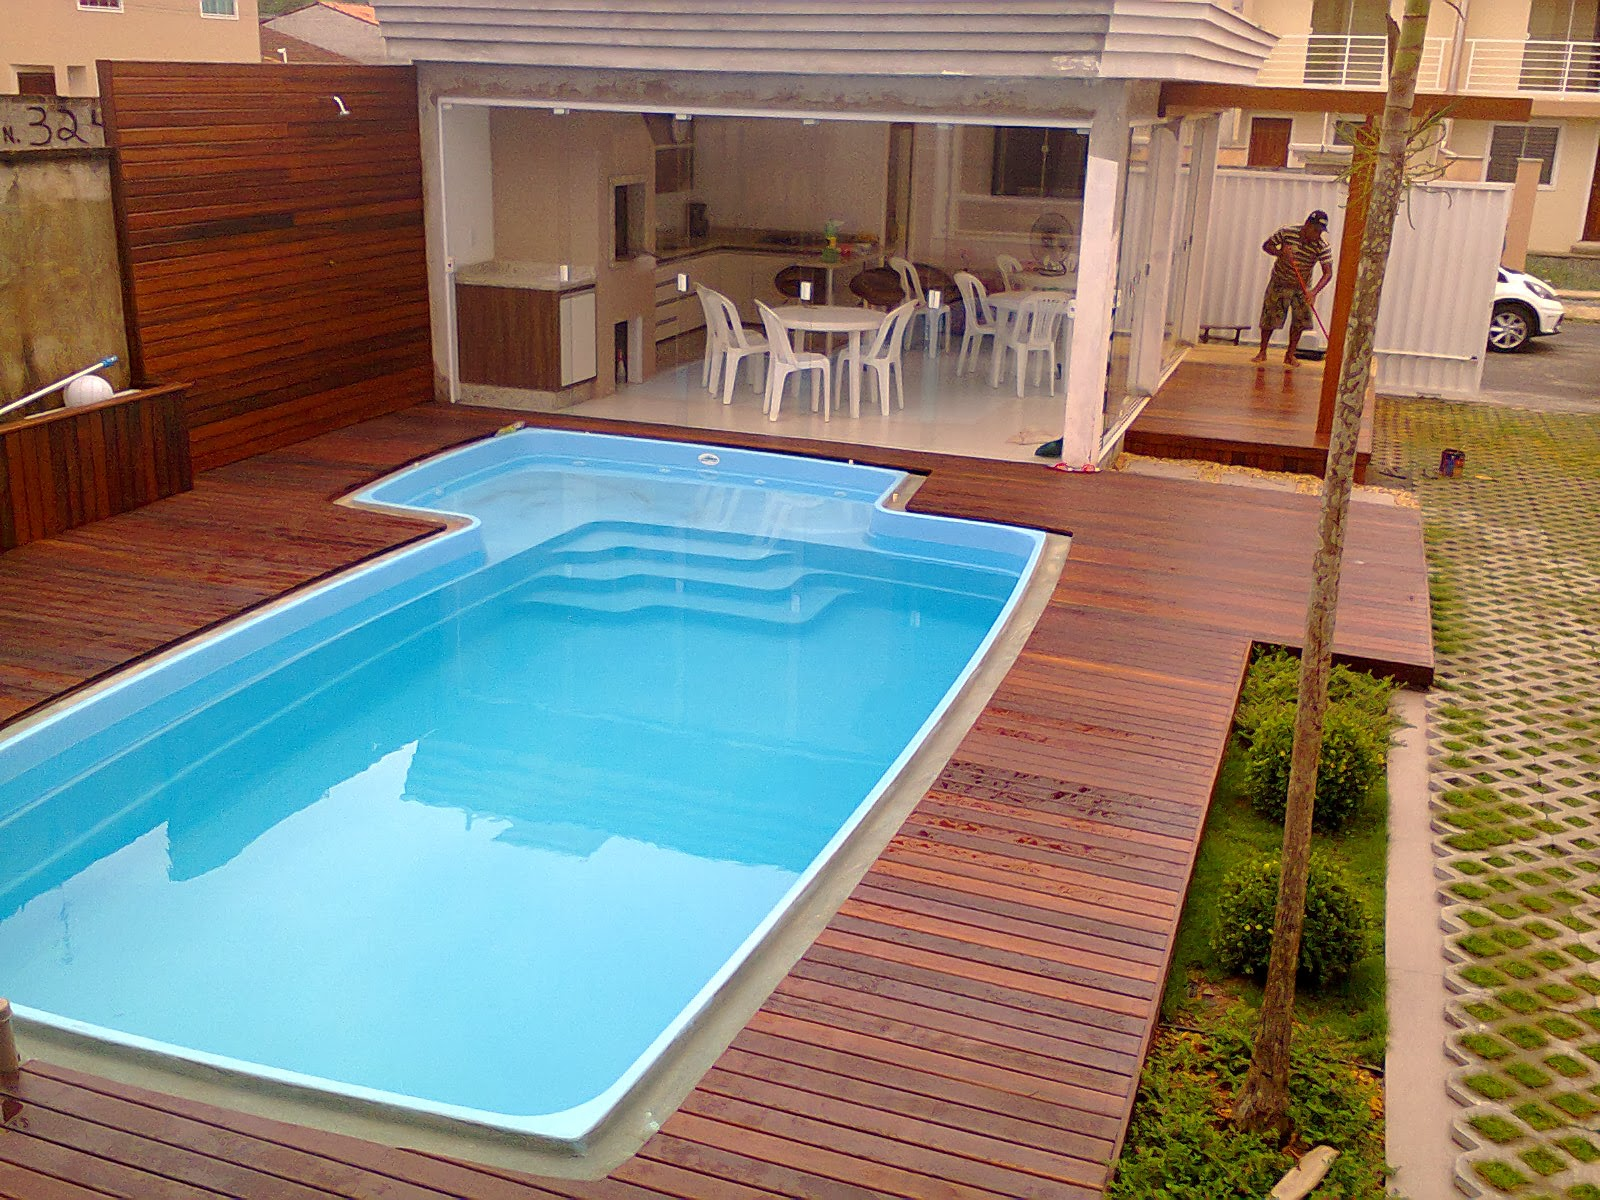 Deck em joinville deck para piscina joinville - Immagini piscina ...